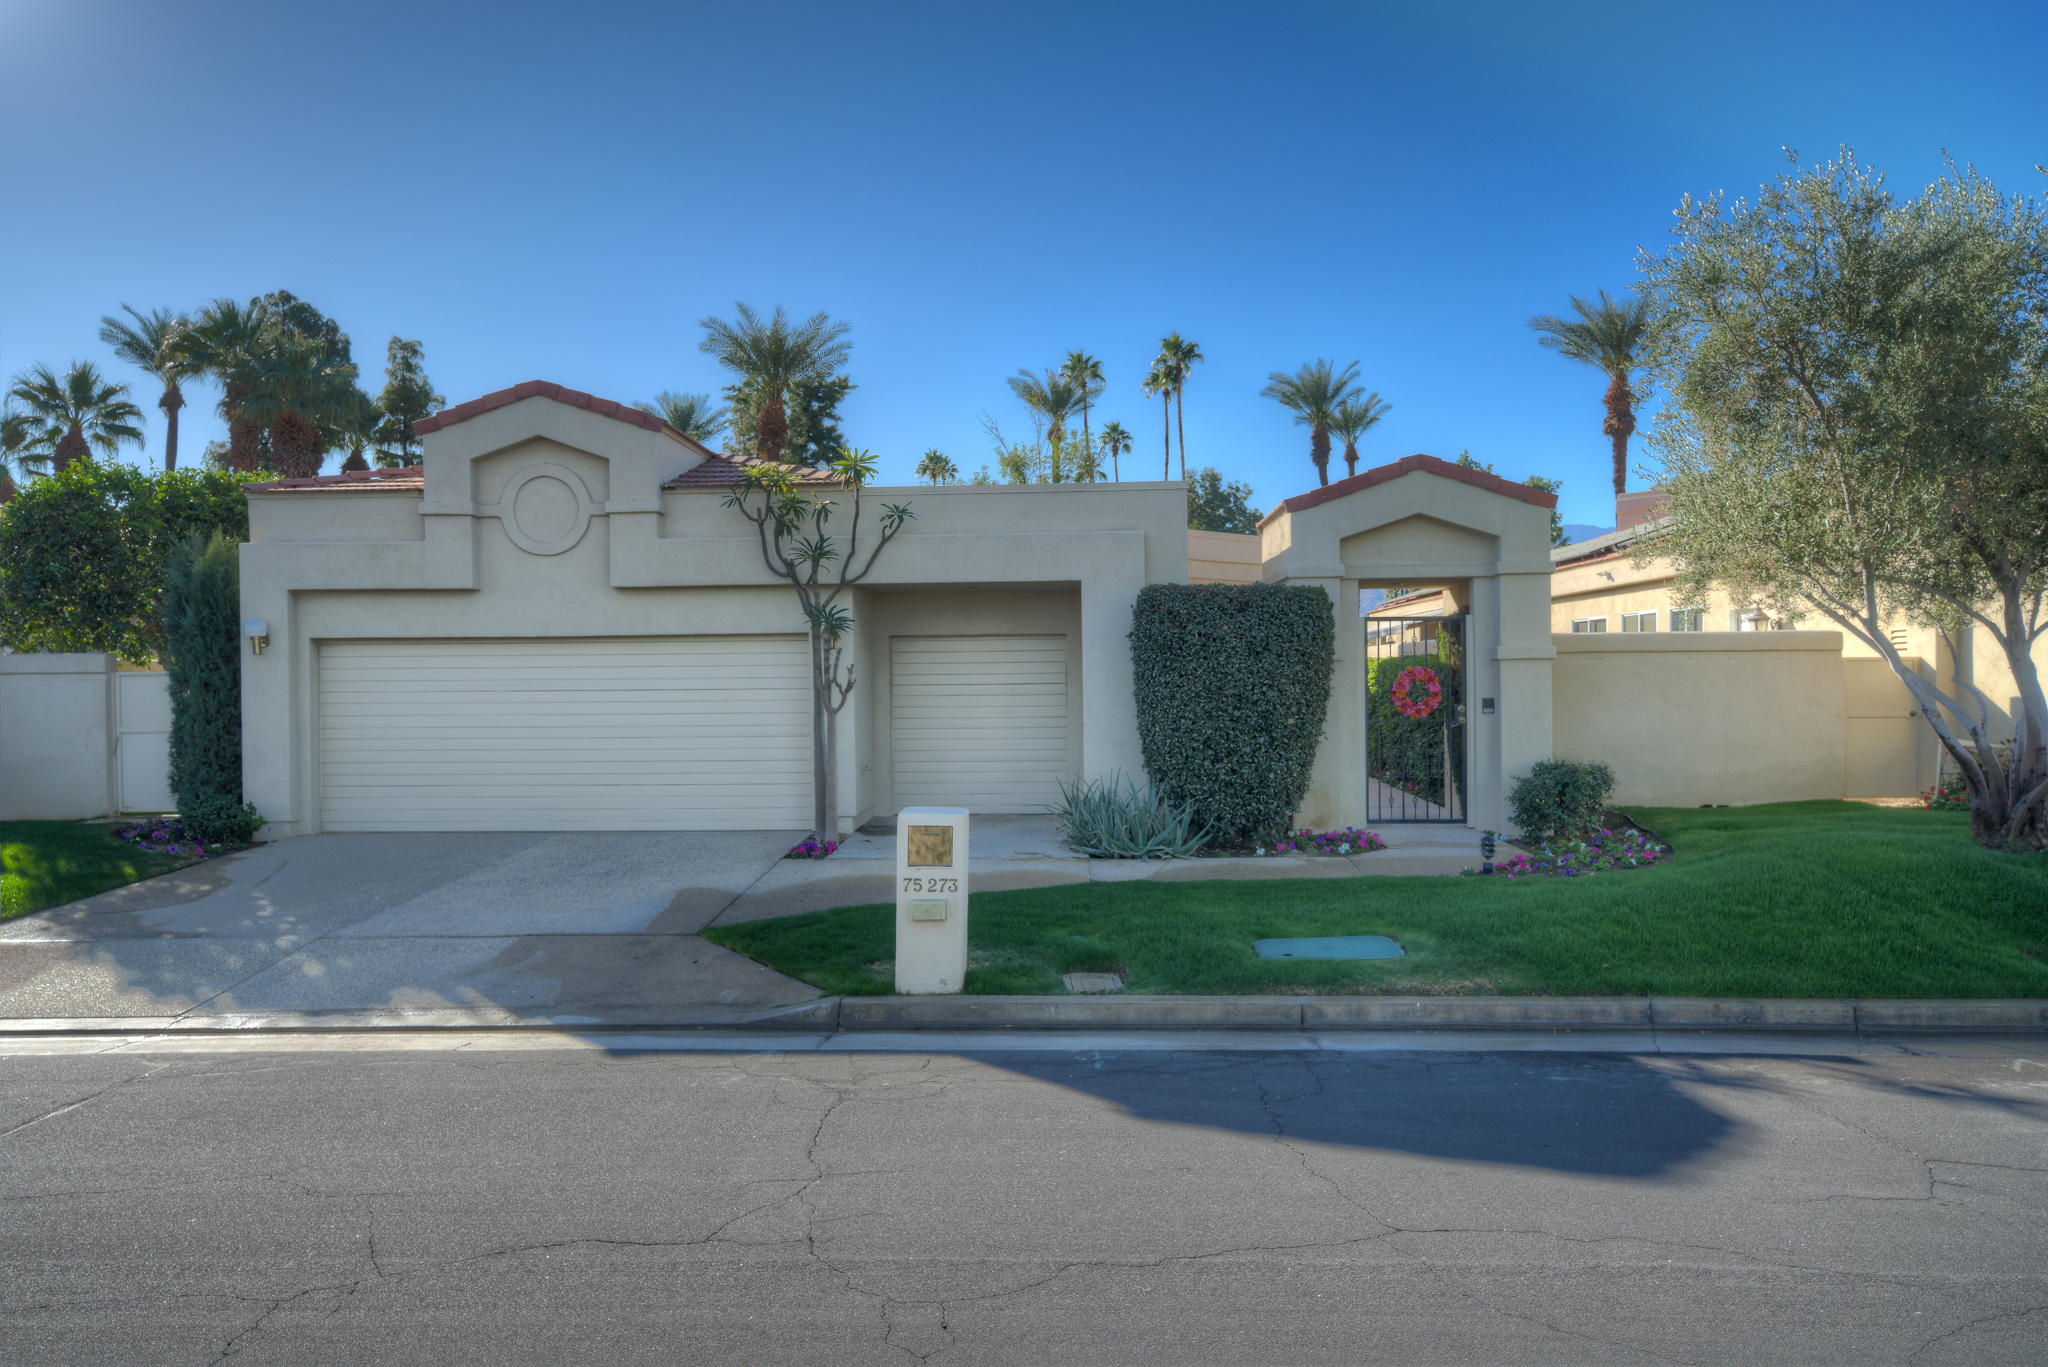 Photo of 75273 Spyglass Drive, Indian Wells, CA 92210